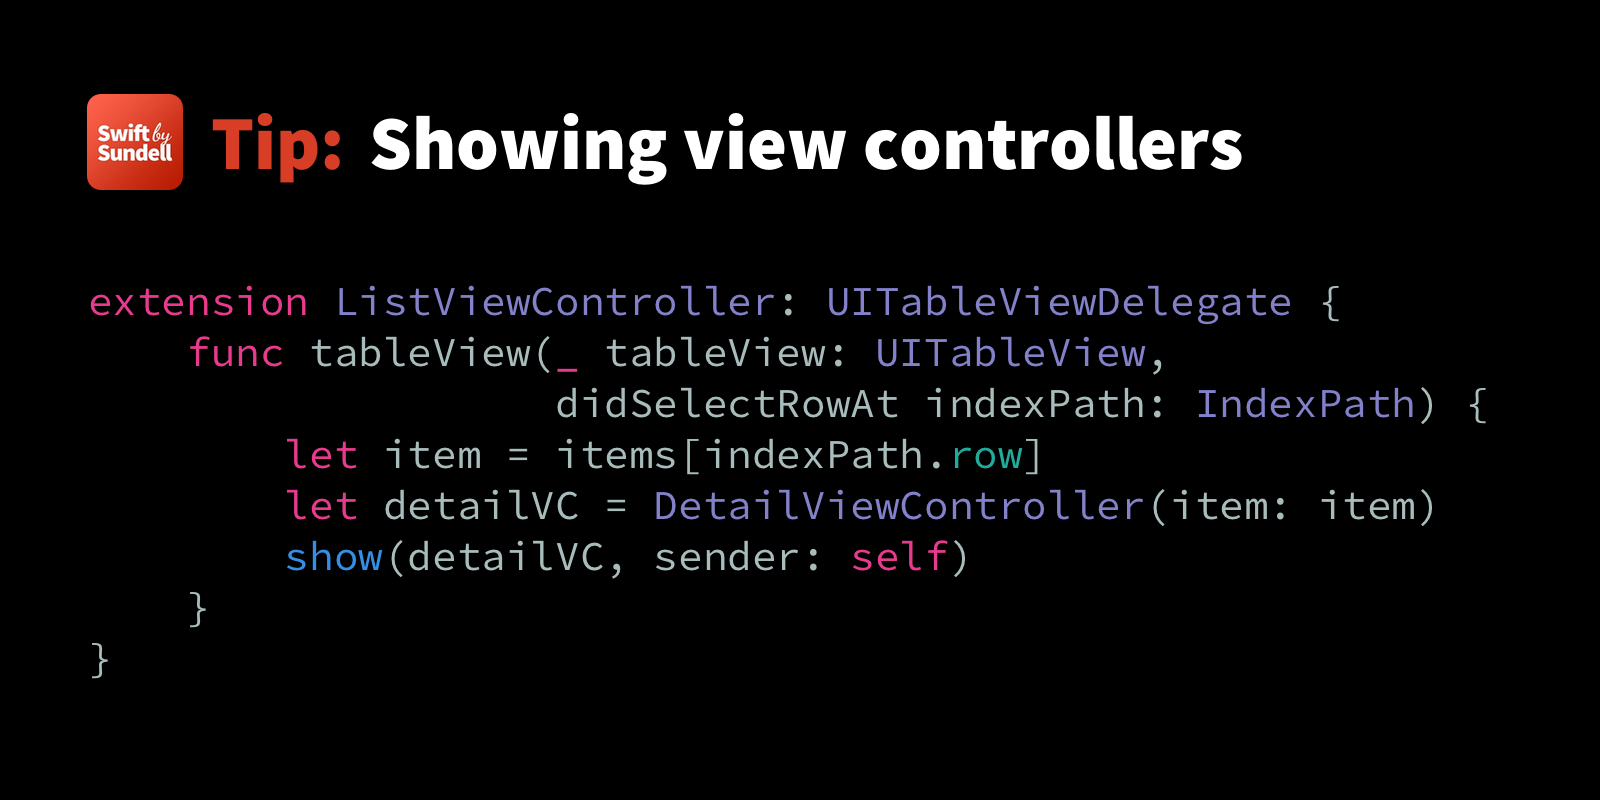 Tip: Showing view controllers, rather than pushing them